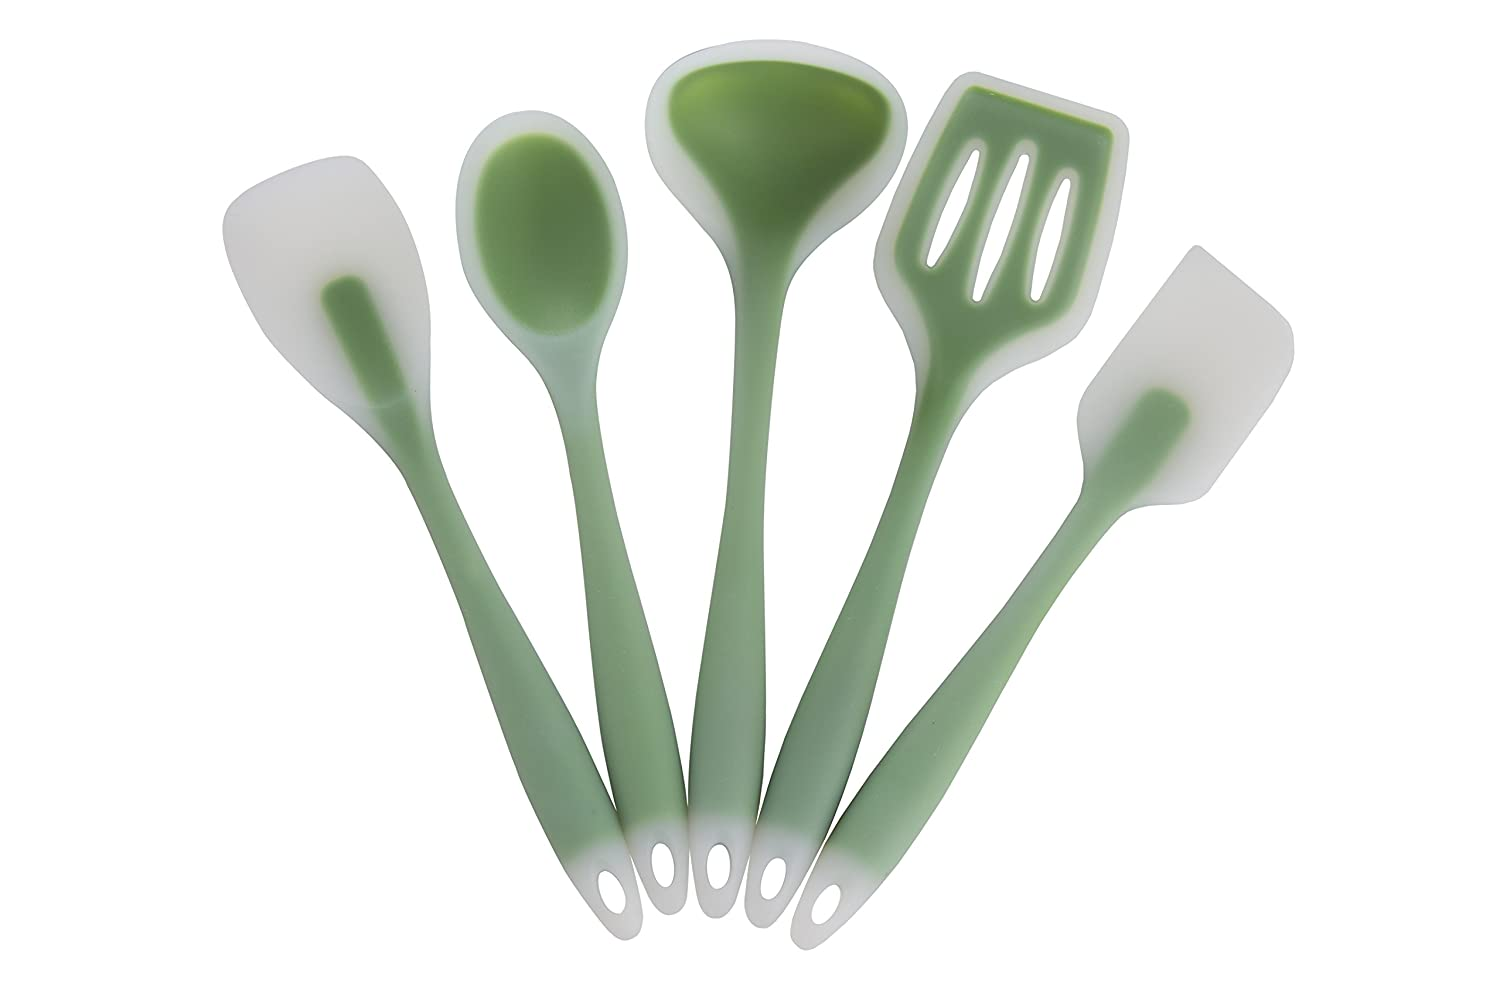 Vintage green kitchen utensils